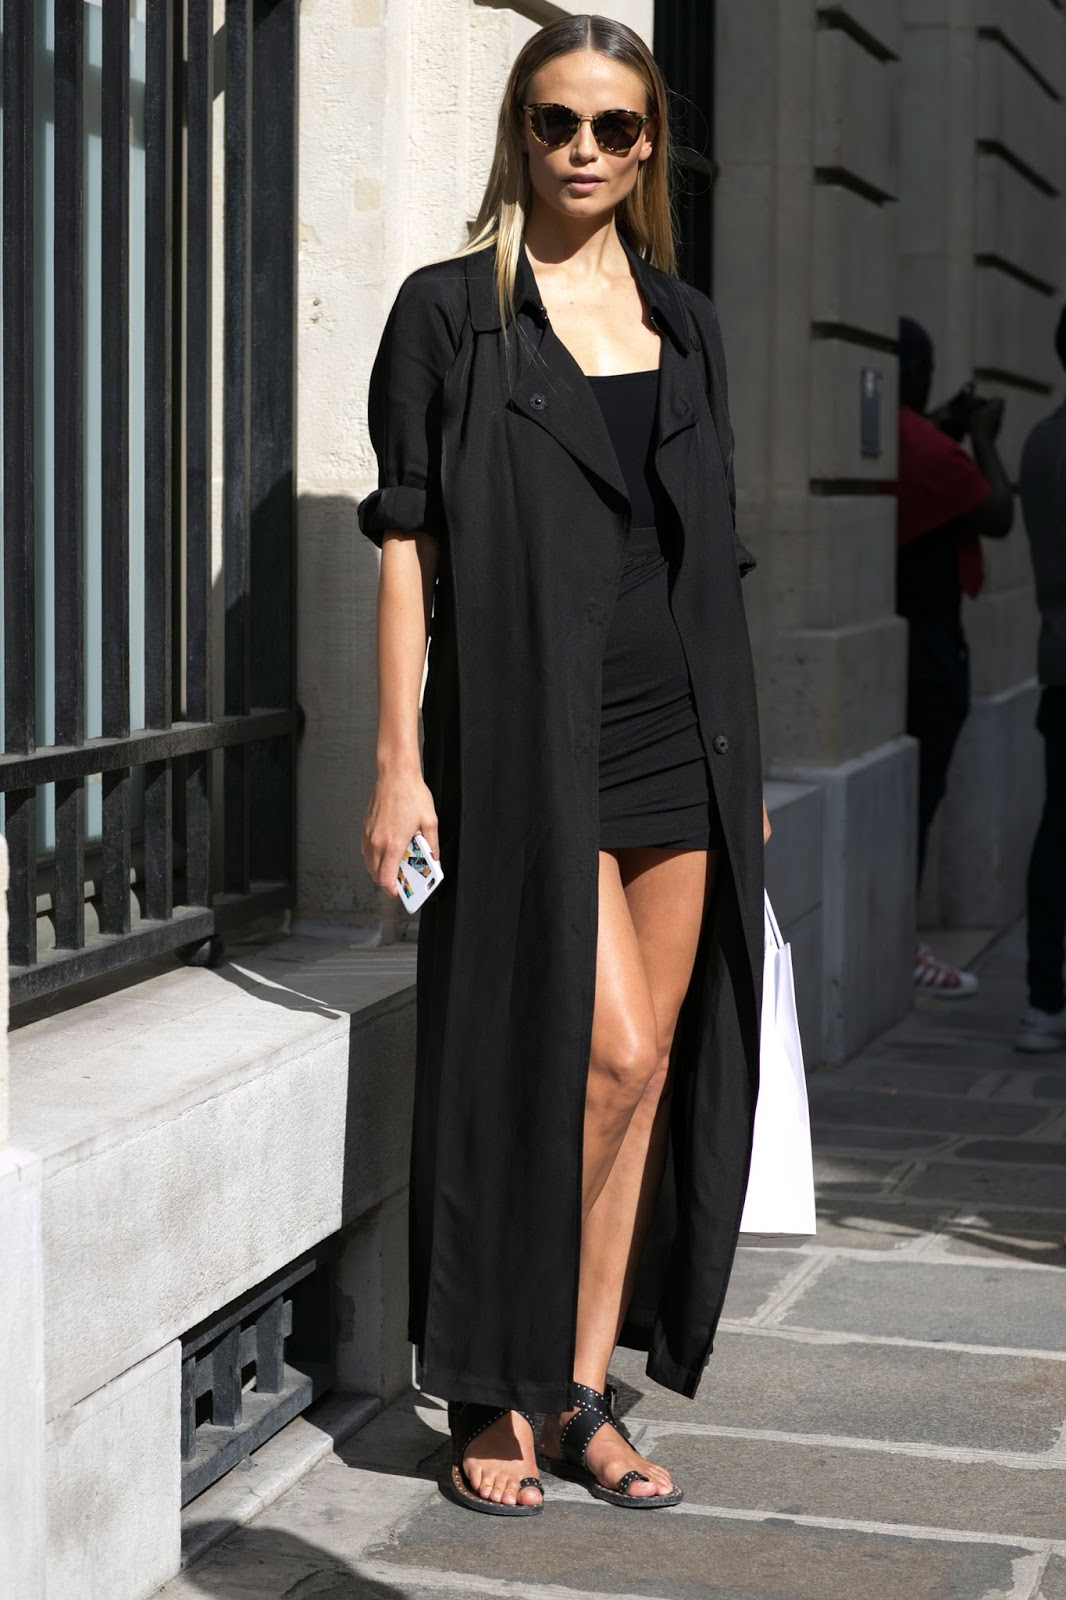 Street Style: Natasha Poly after Balmain Menswear Paris Fashion Week